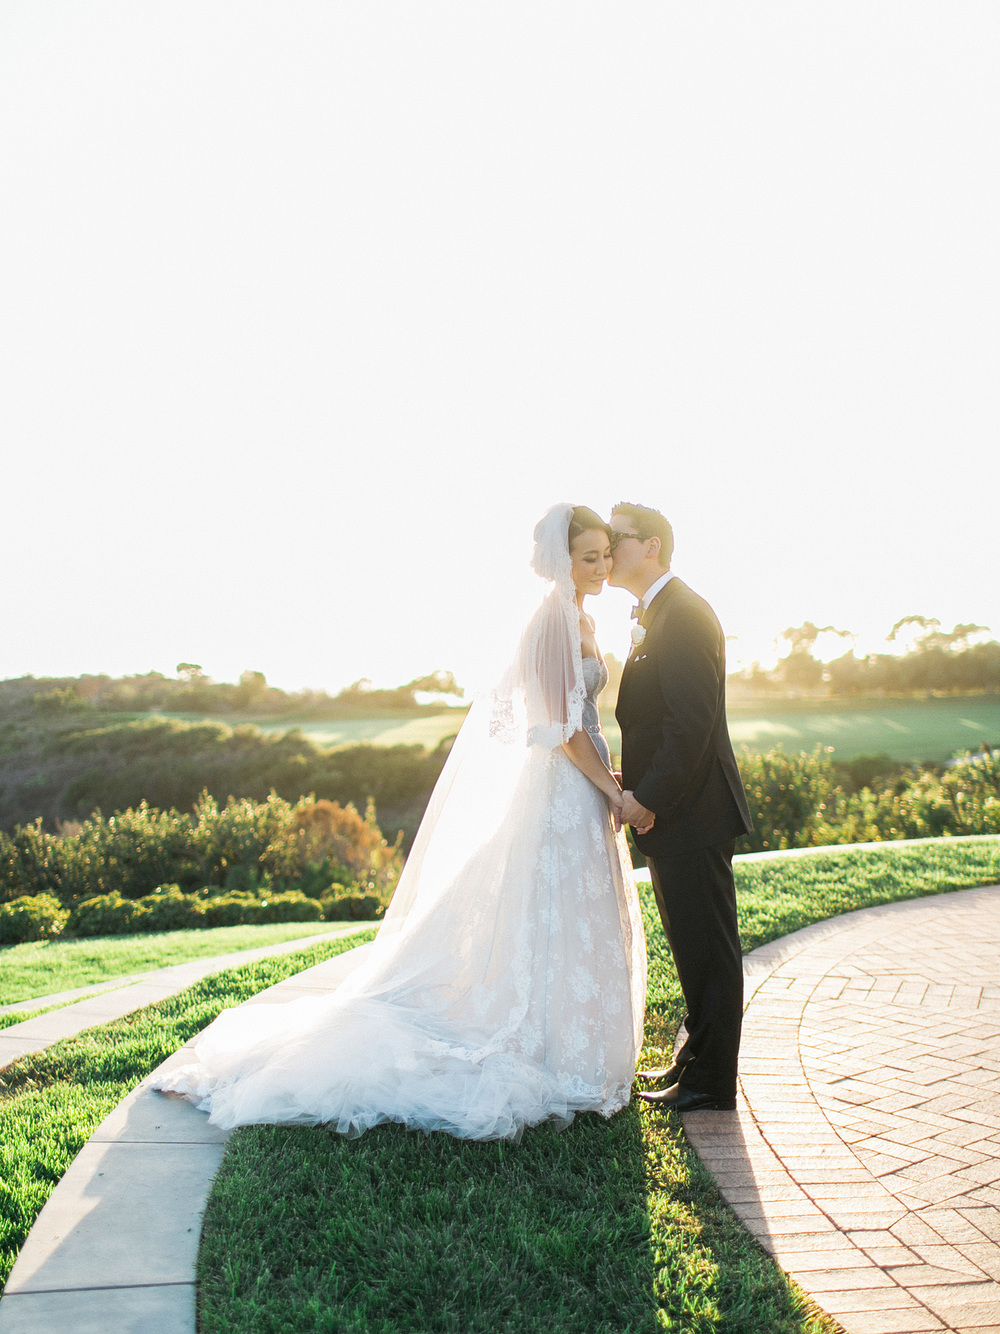 Pelican-hill-wedding-29